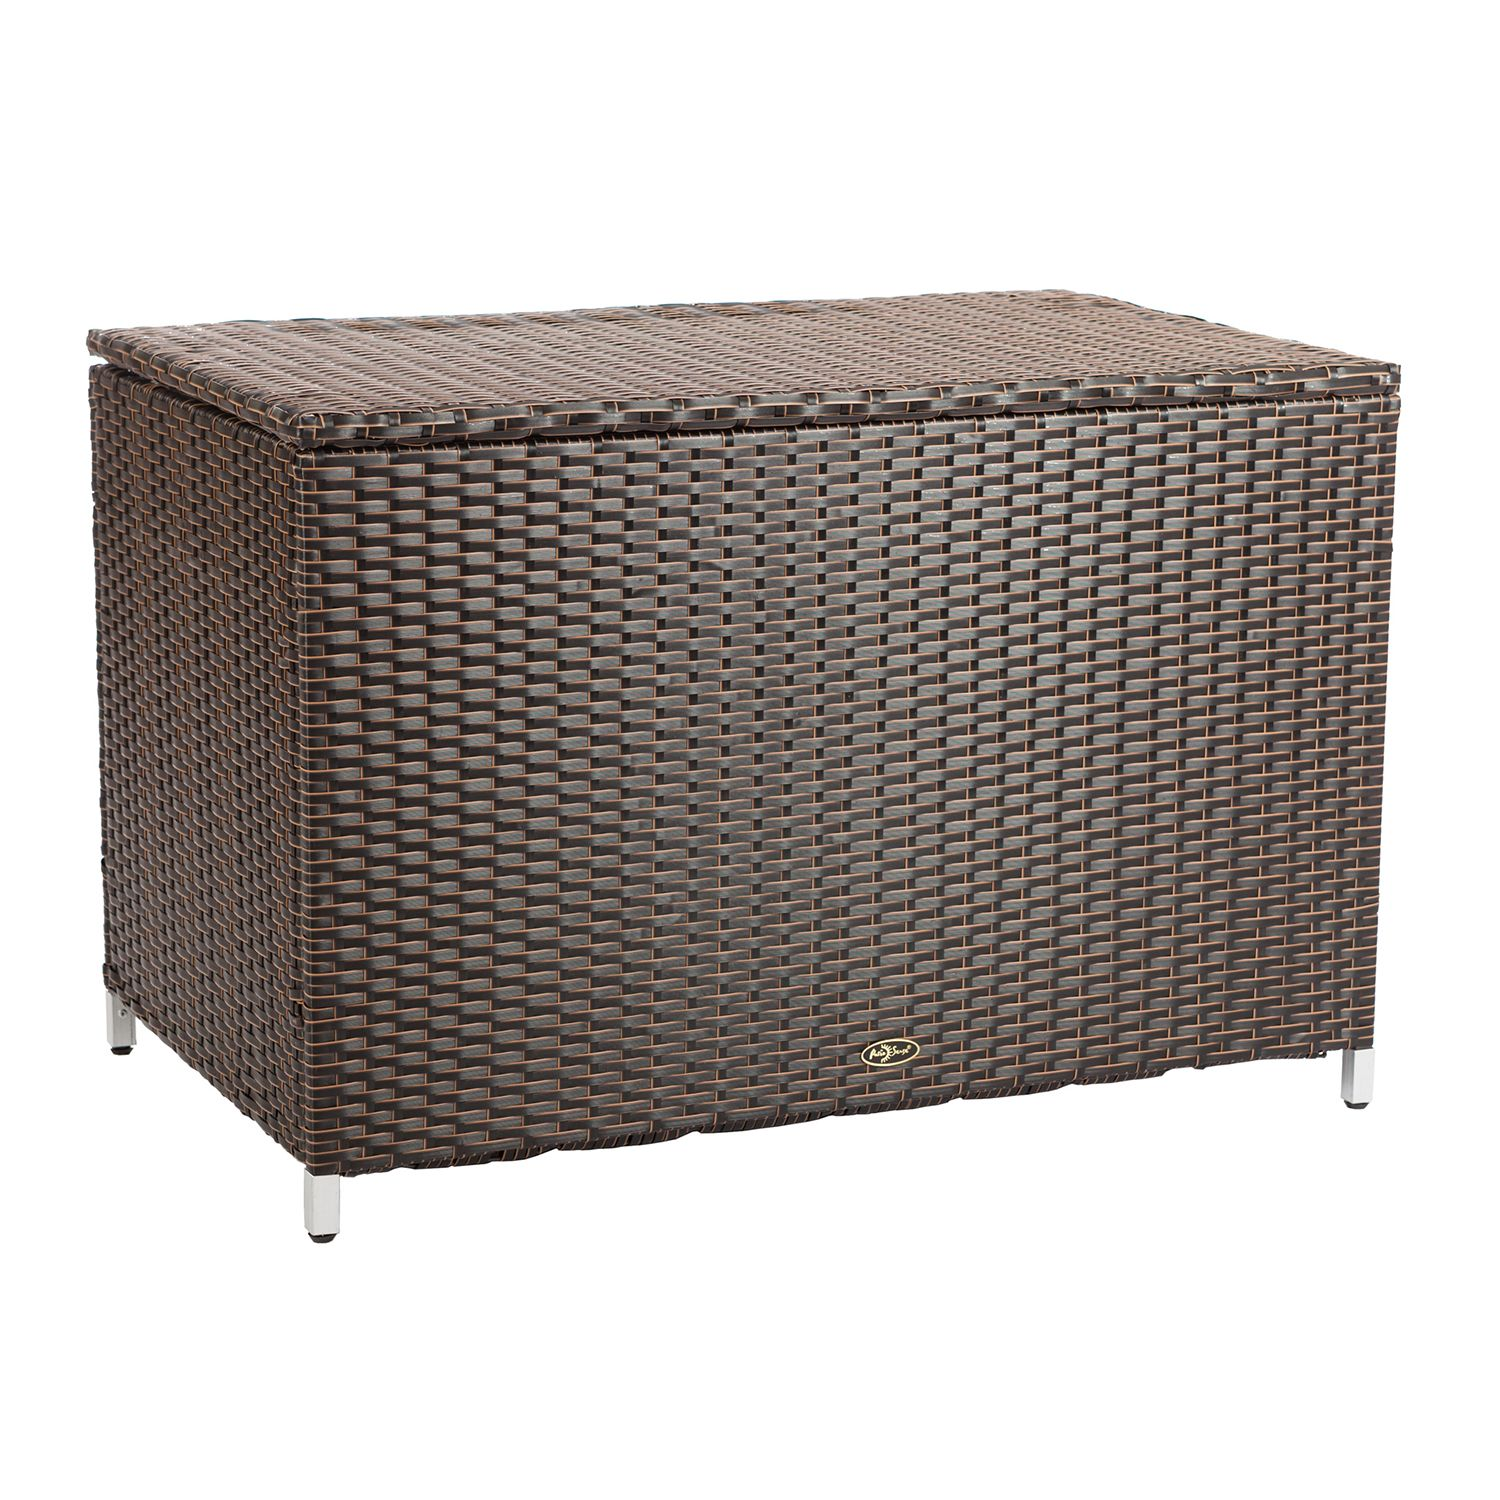 Patio Sense Hayden Indoor / Outdoor Storage Deck Box